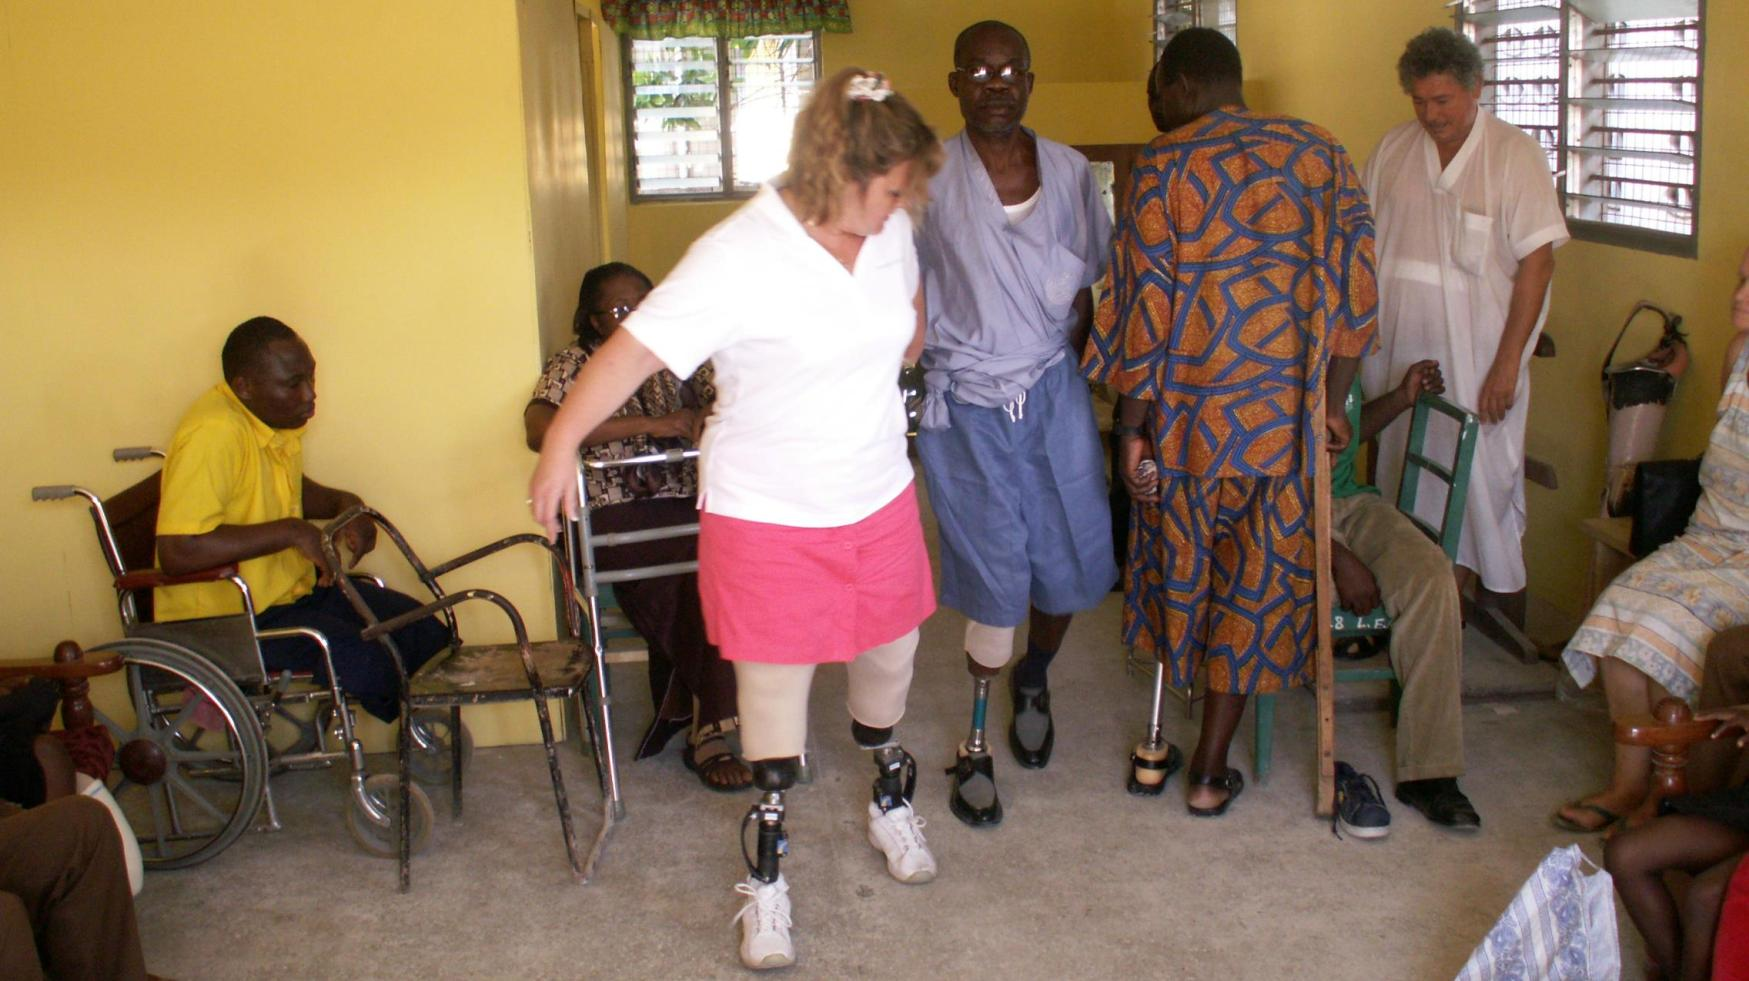 Giving To Standing With Hope's Prosthetic Limb Ministry